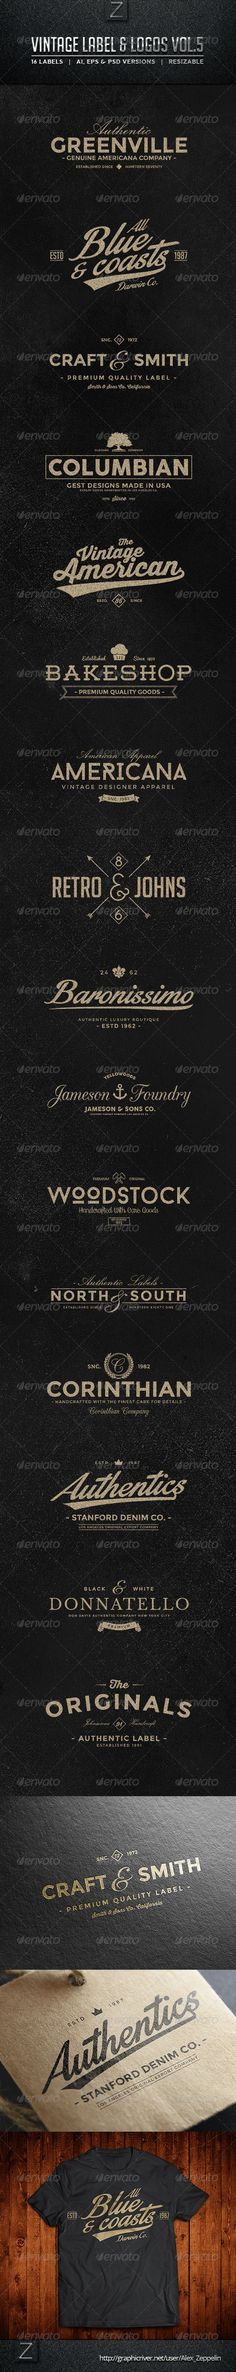 Vintage Labels & Logos Template | Buy and Download: http://graphicriver.net/item/vintage-labels-logos-vol5/8659229?WT.ac=category_thumb&WT.z_author=Alex_Zeppelin&ref=ksioks